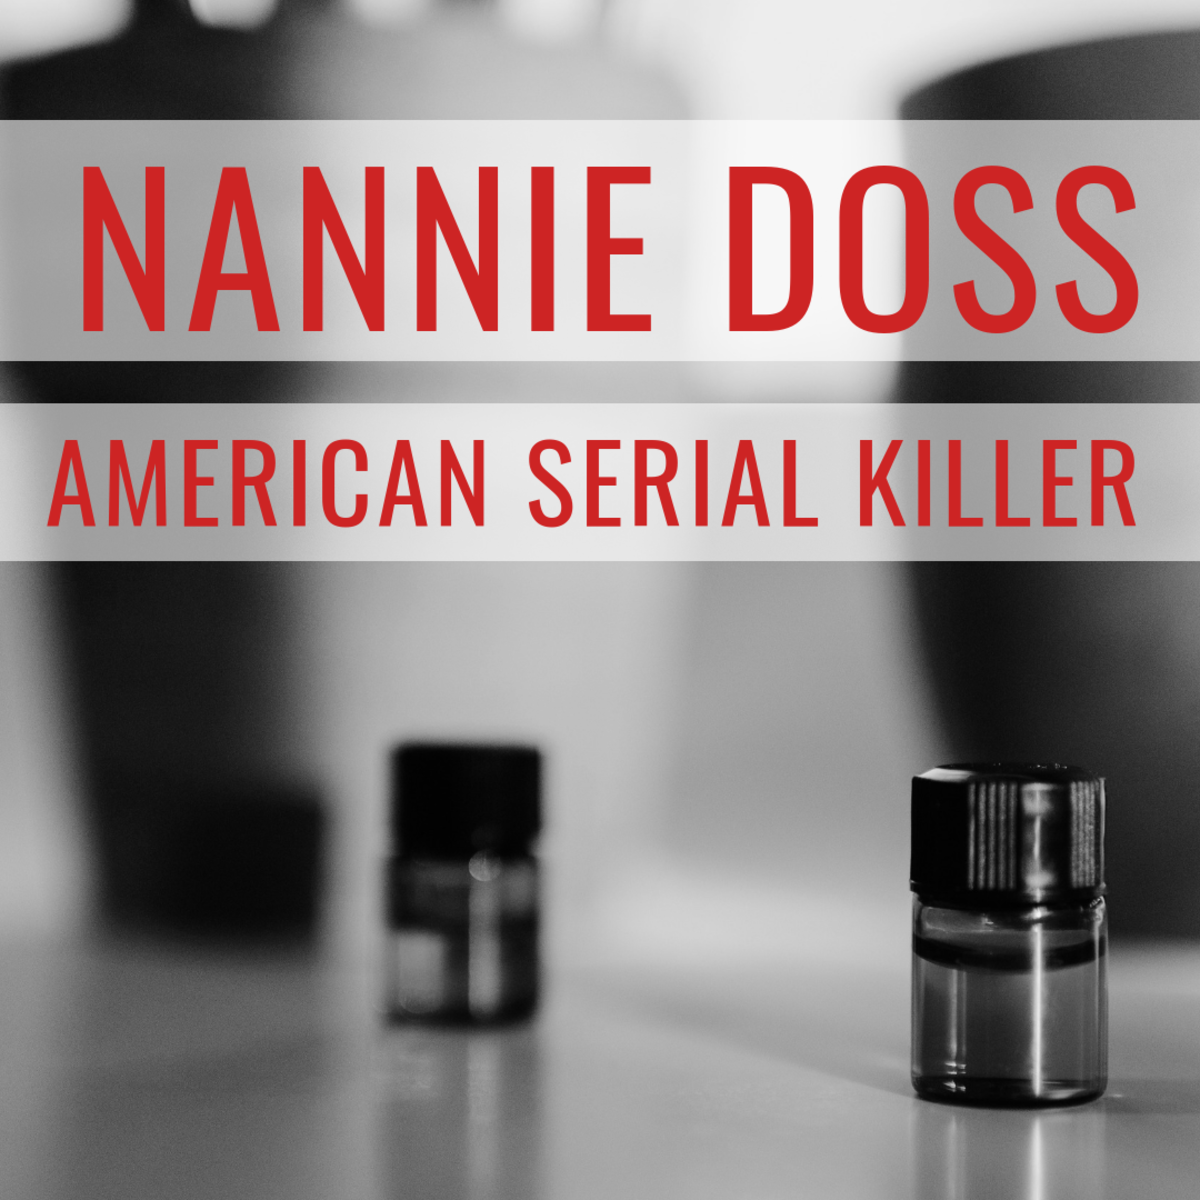 Serial Killer Nannie Doss: The Giggling Granny